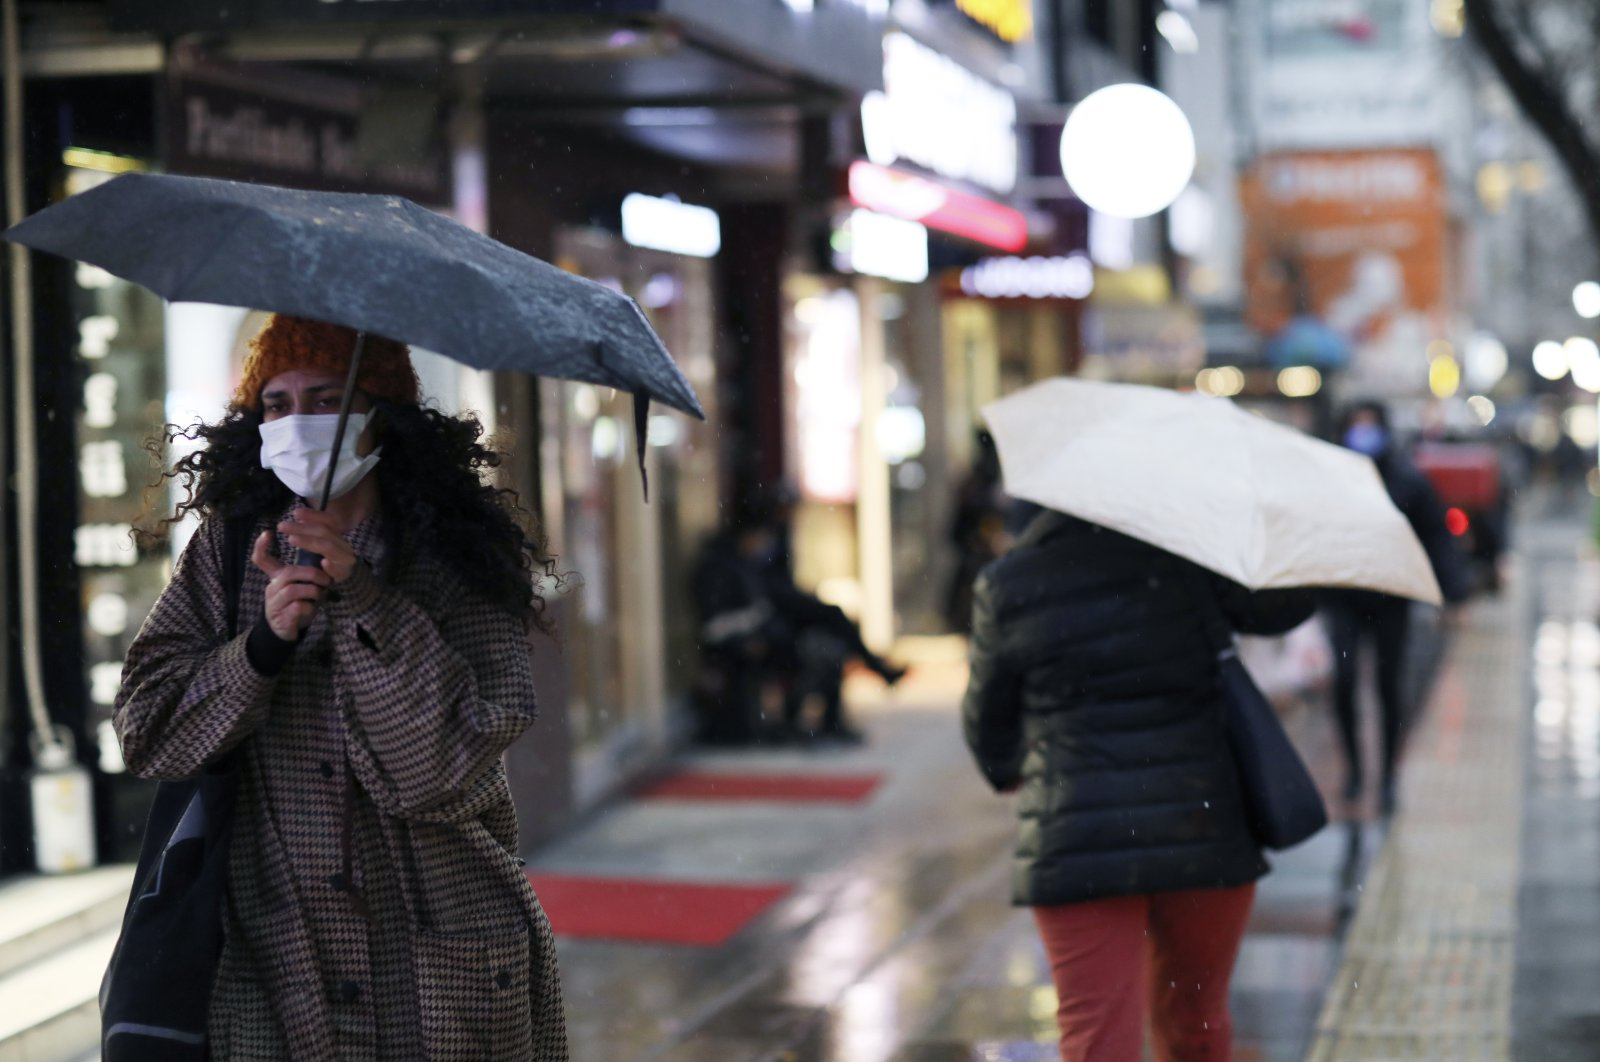 A woman with a face mask walks in the rain on a street, in Ankara, Turkey, on March 16, 2021. (AP Photo)